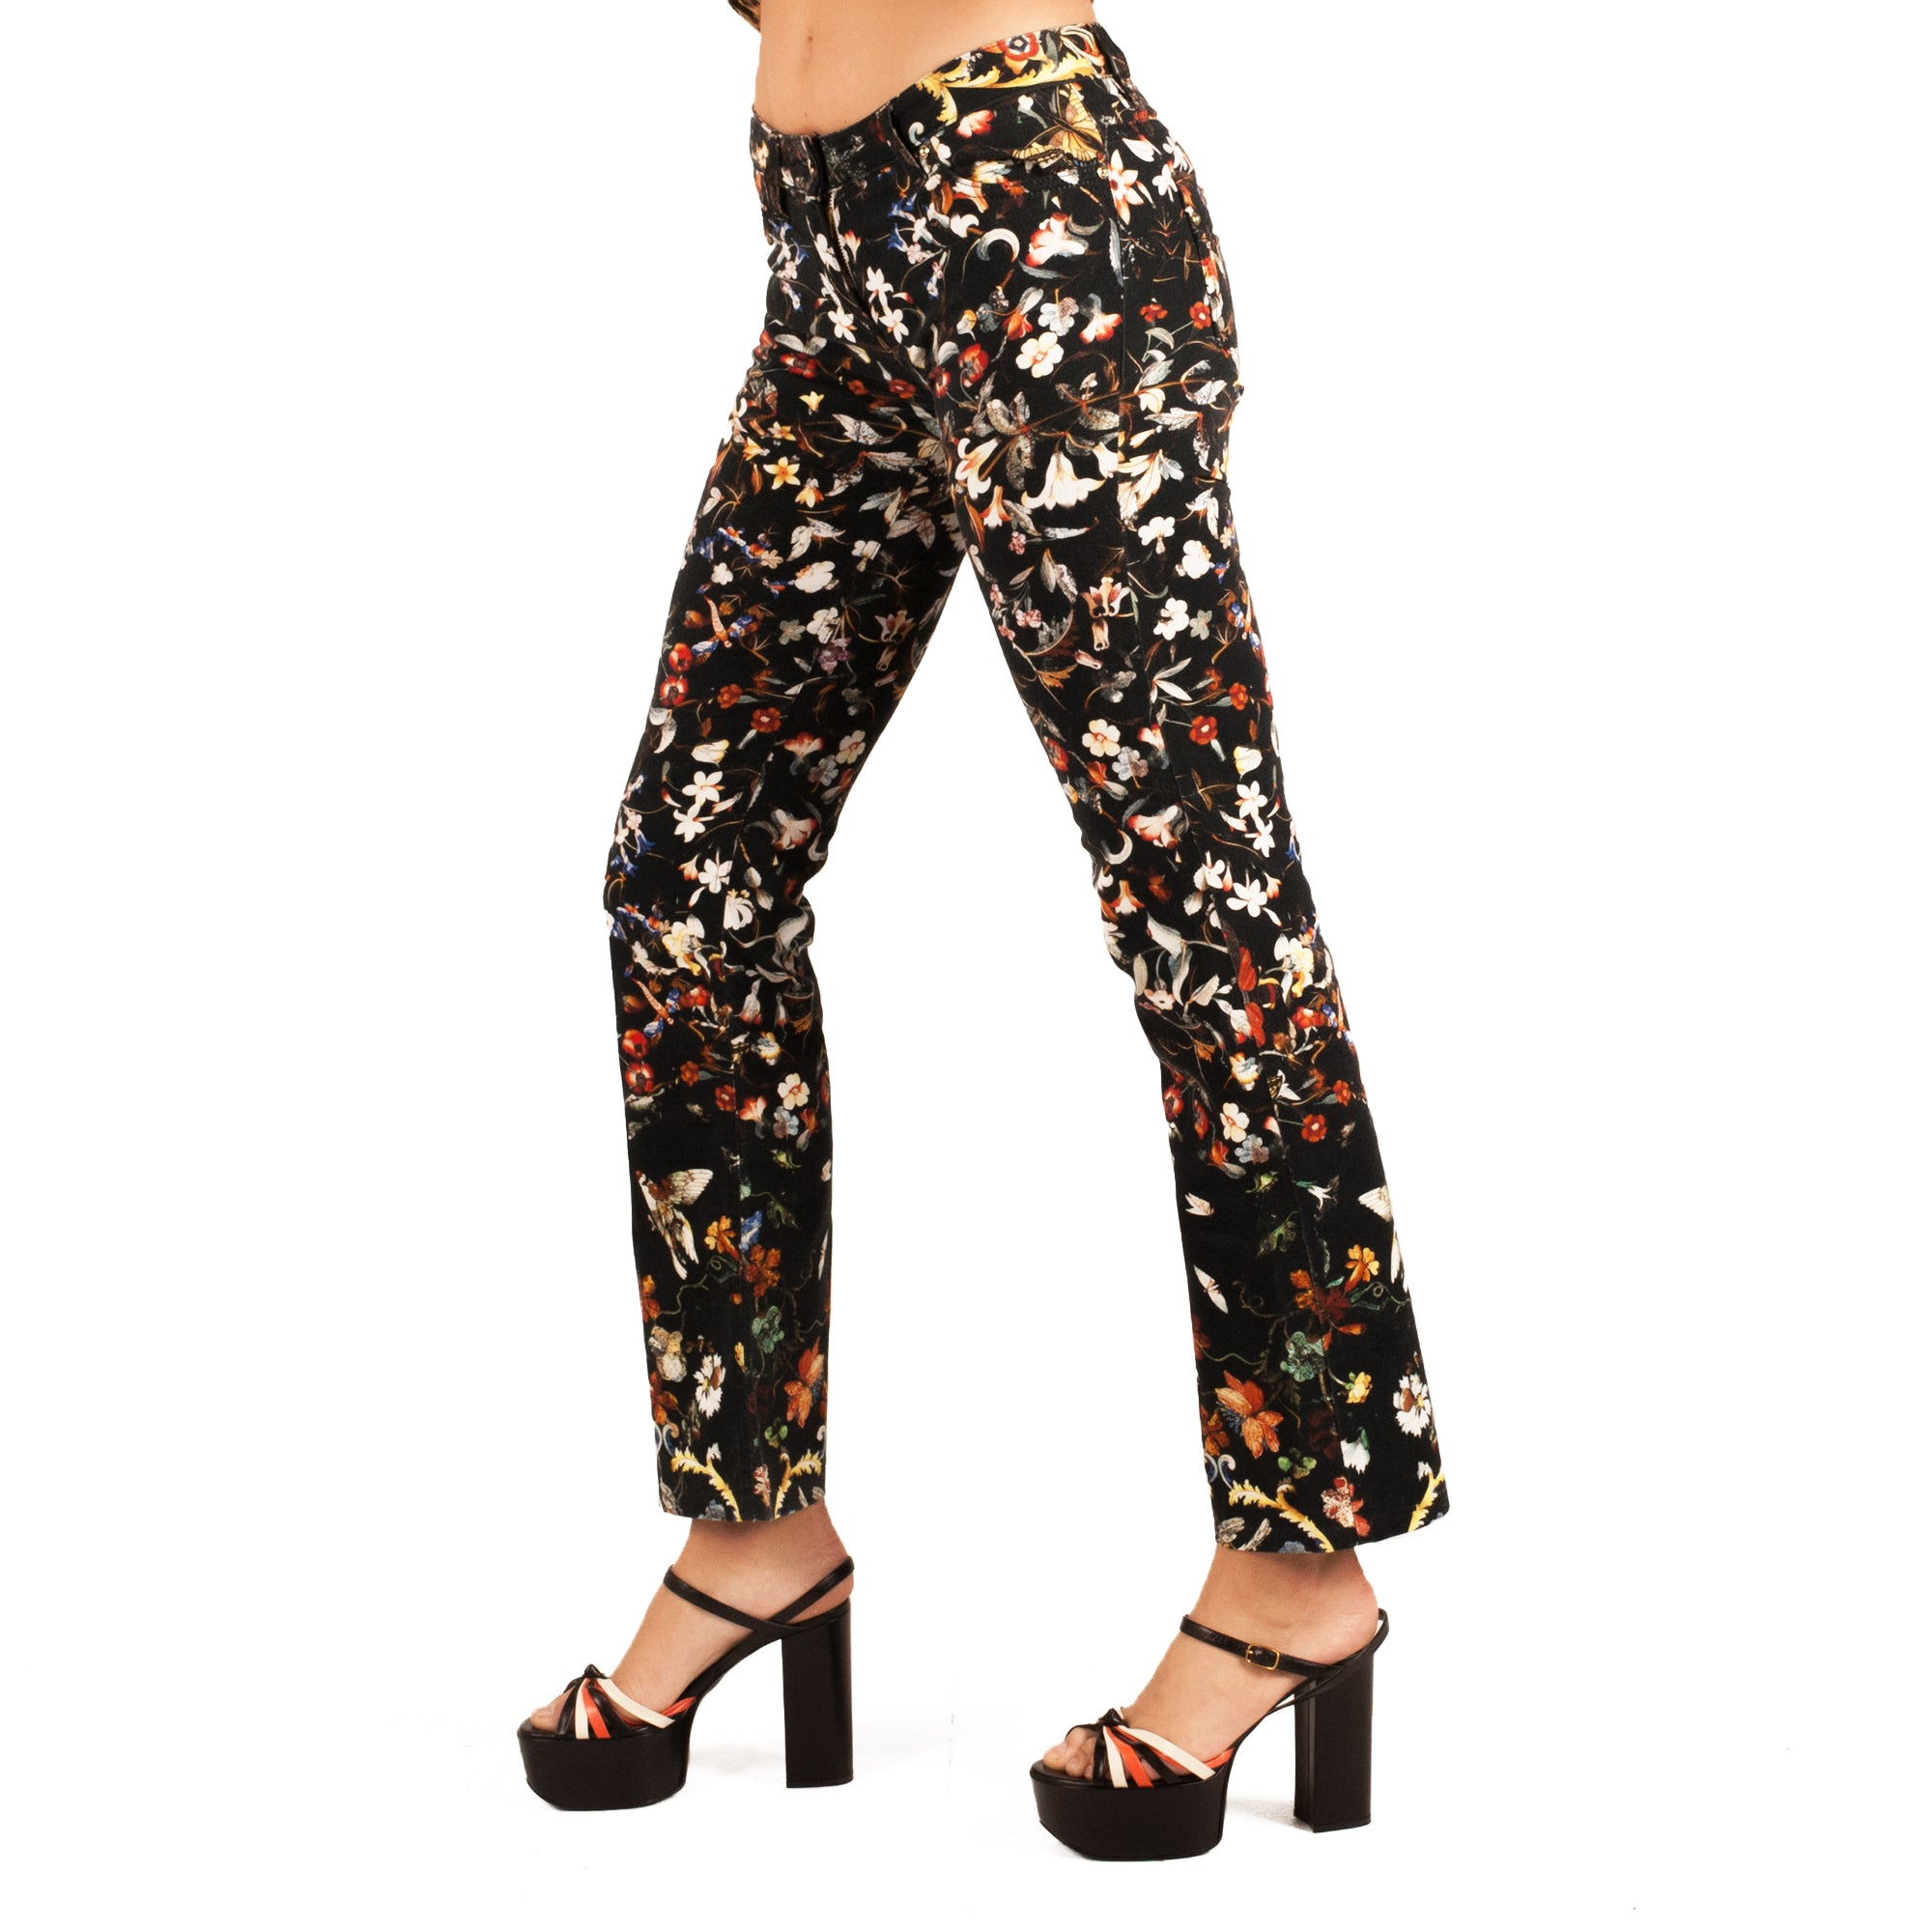 Roberto Cavalli Jeans (Floral) UK 10